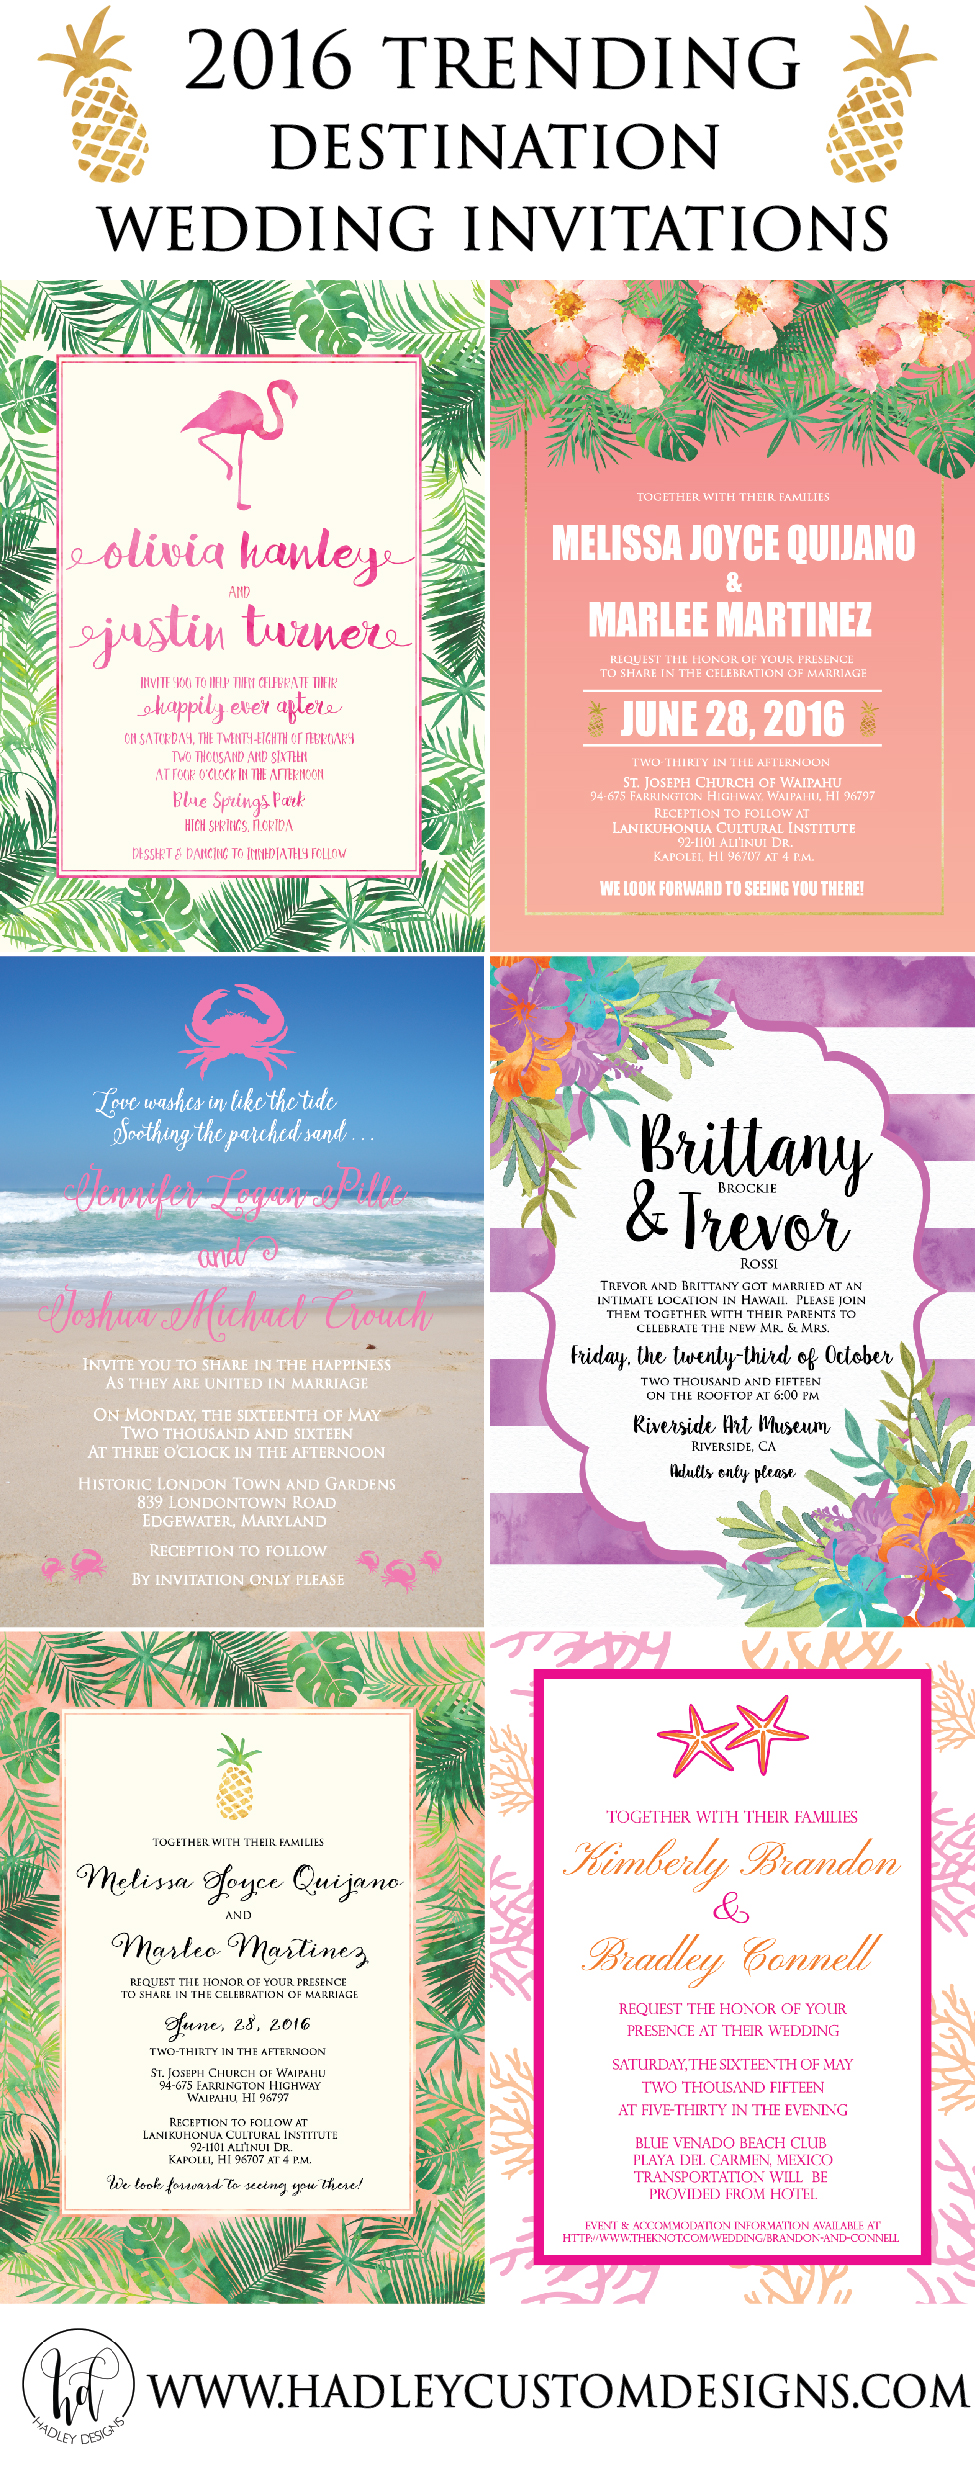 Tropical Wedding Invitations, Pineapple Wedding Invitations, Destination Wedding Invitation, Elegant Wedding Invitations, Classic Wedding Invites, Formal Wedding Invitation, Traditional Wedding Invite